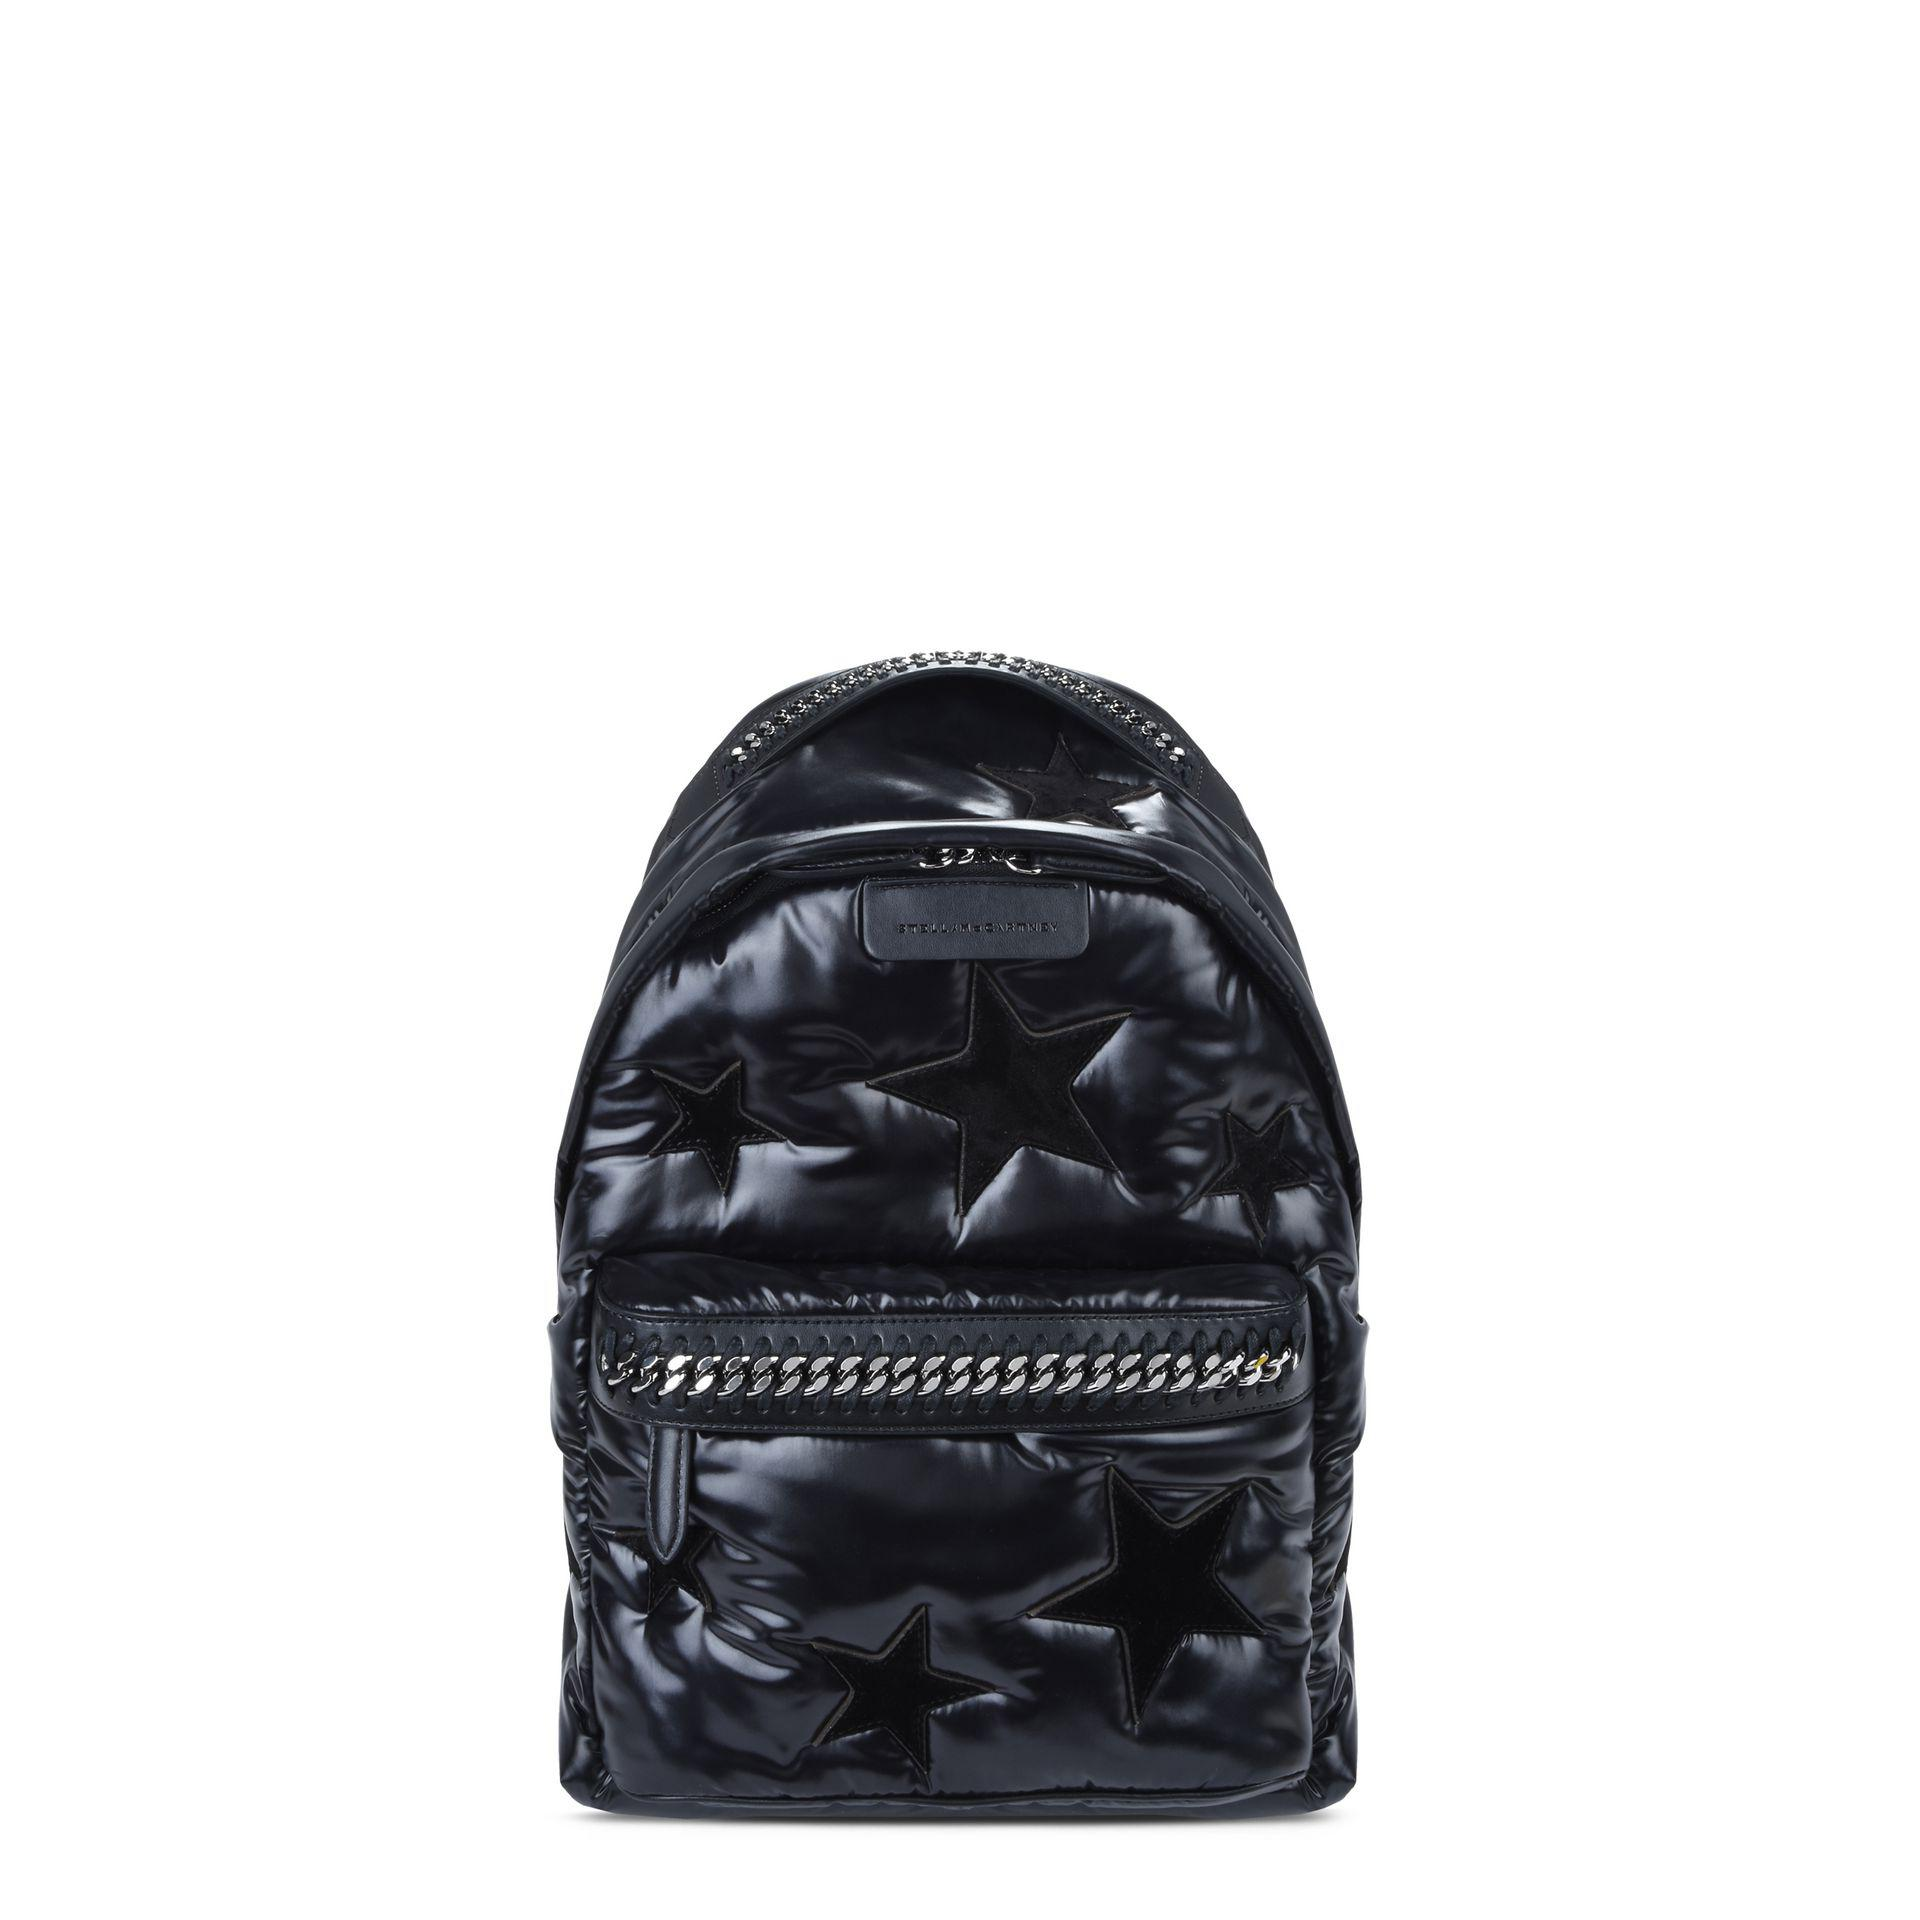 Cheap 2018 Newest Buy Cheap Low Shipping mini Falabella Go backpack - Metallic Stella McCartney Sale With Paypal RHQLl